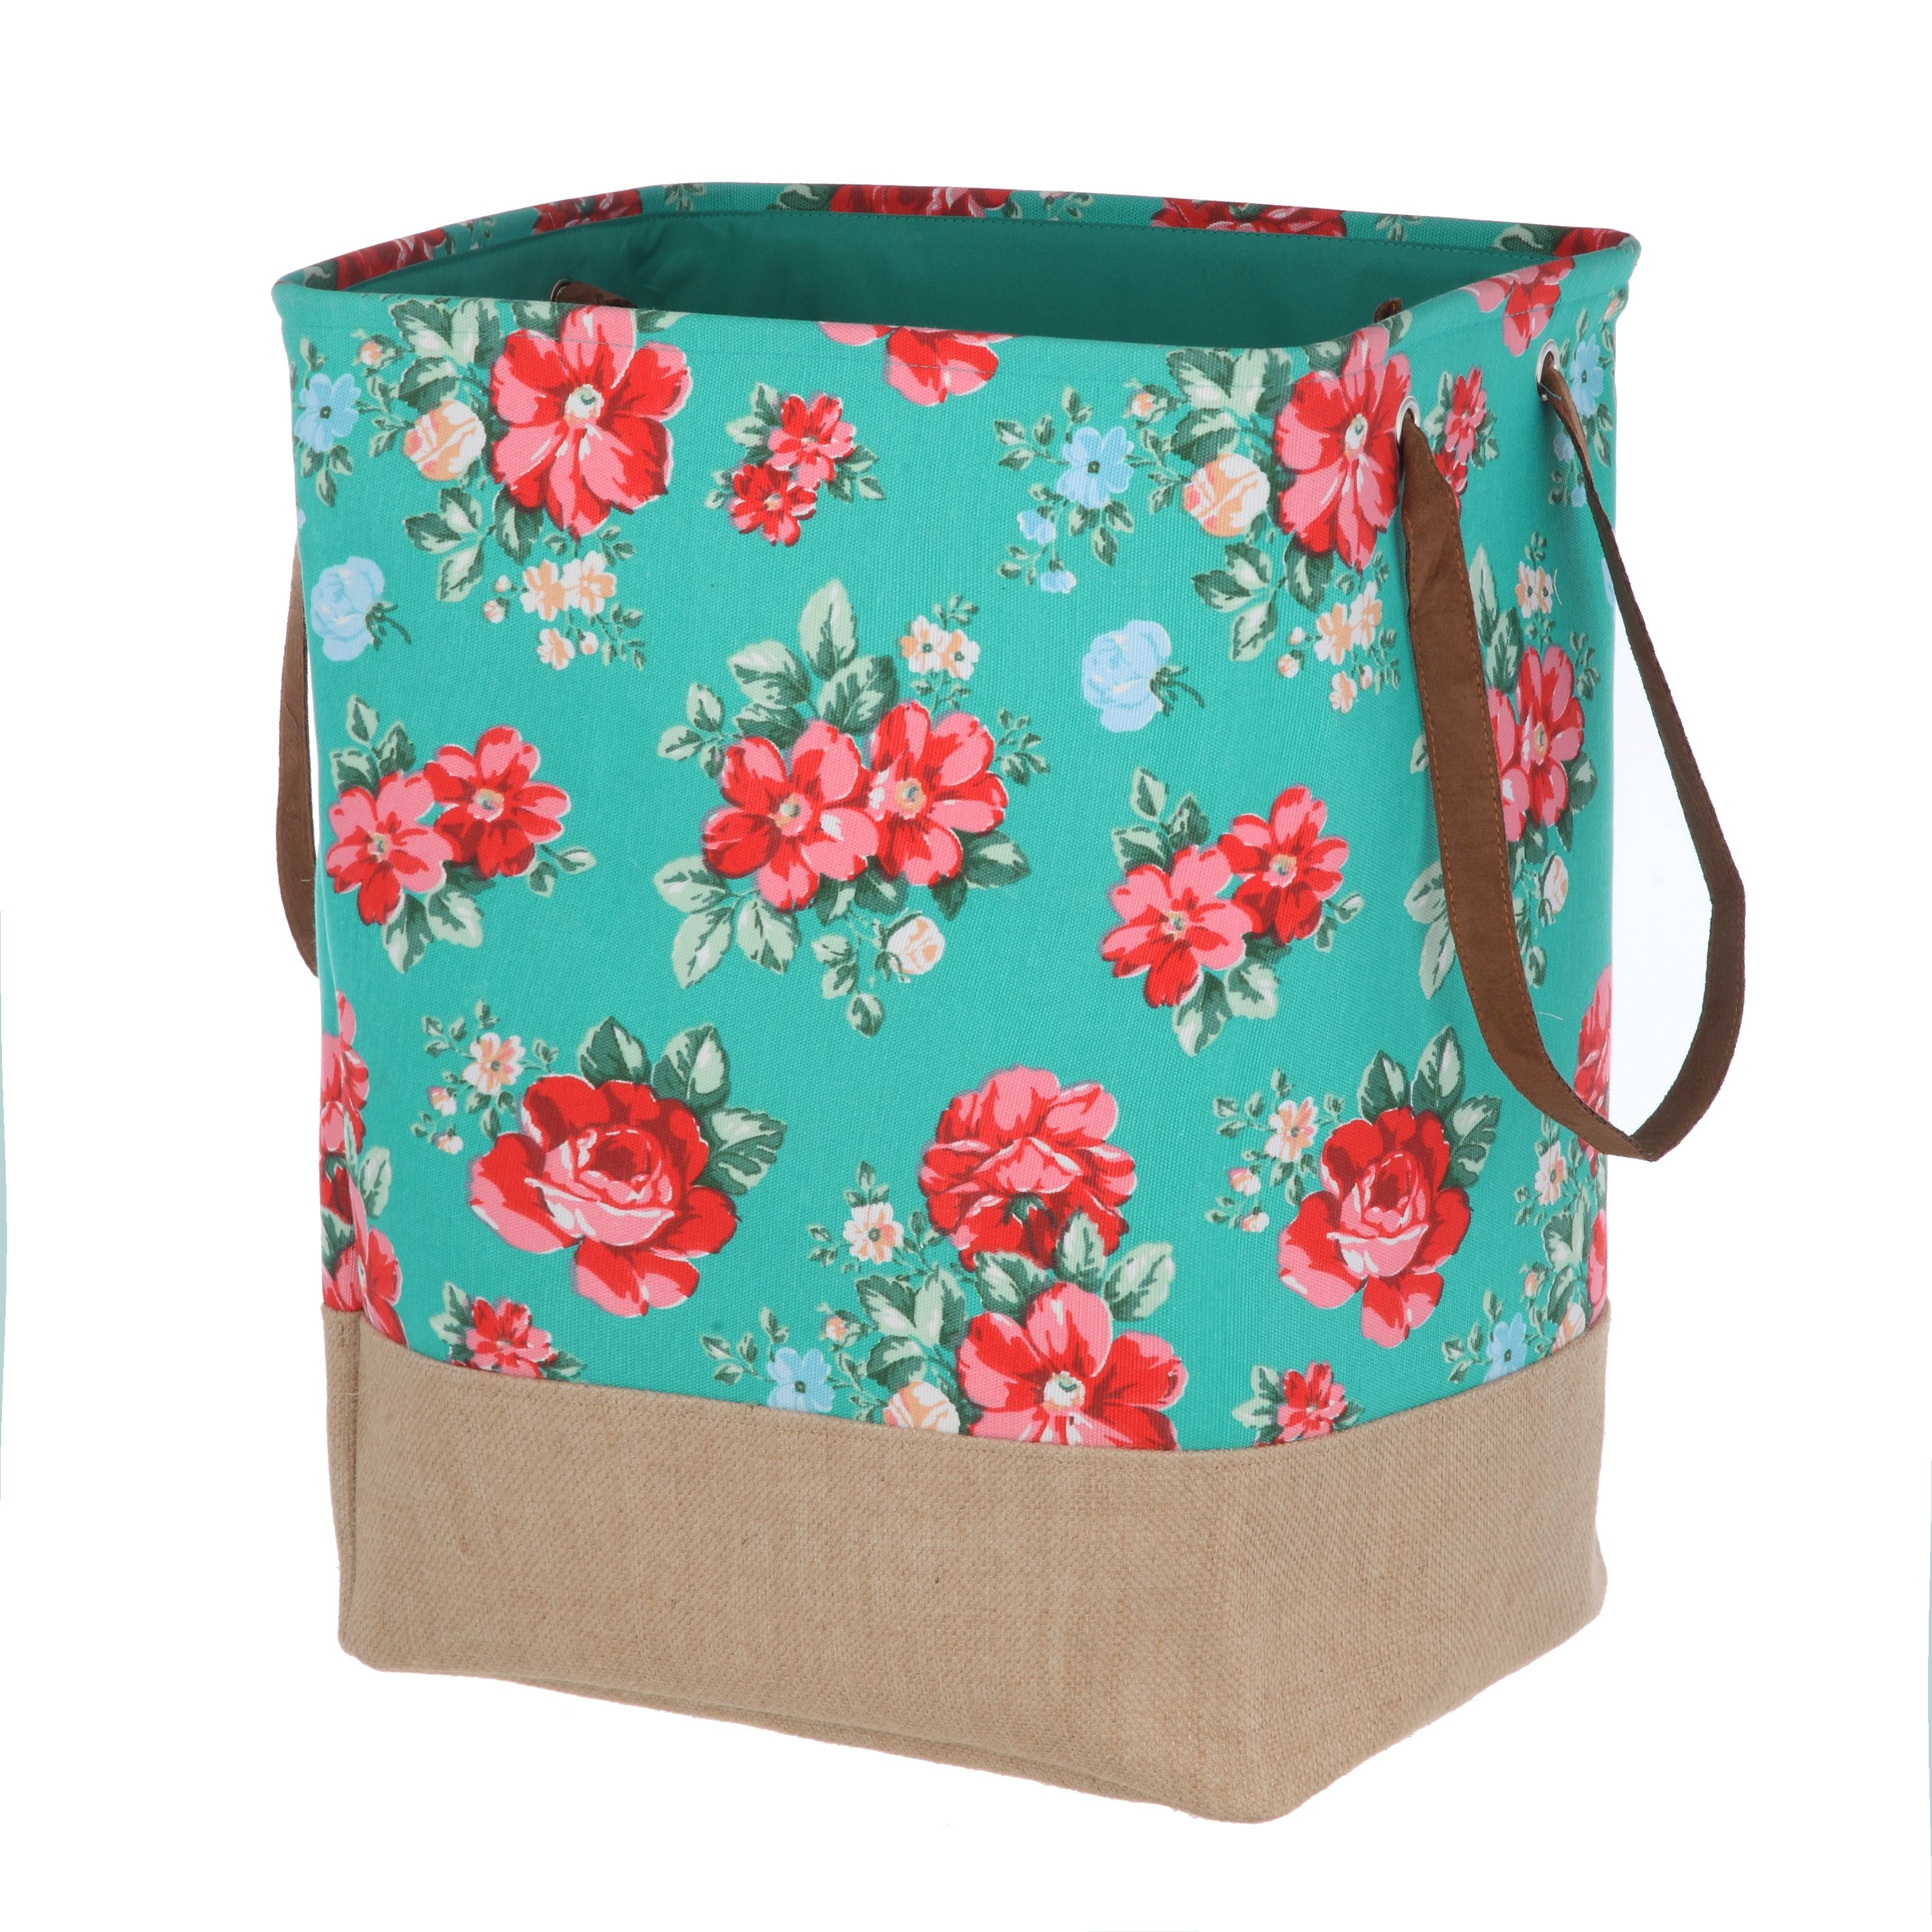 Pioneer Woman Rectangle Canvas Hamper - Teal Floral